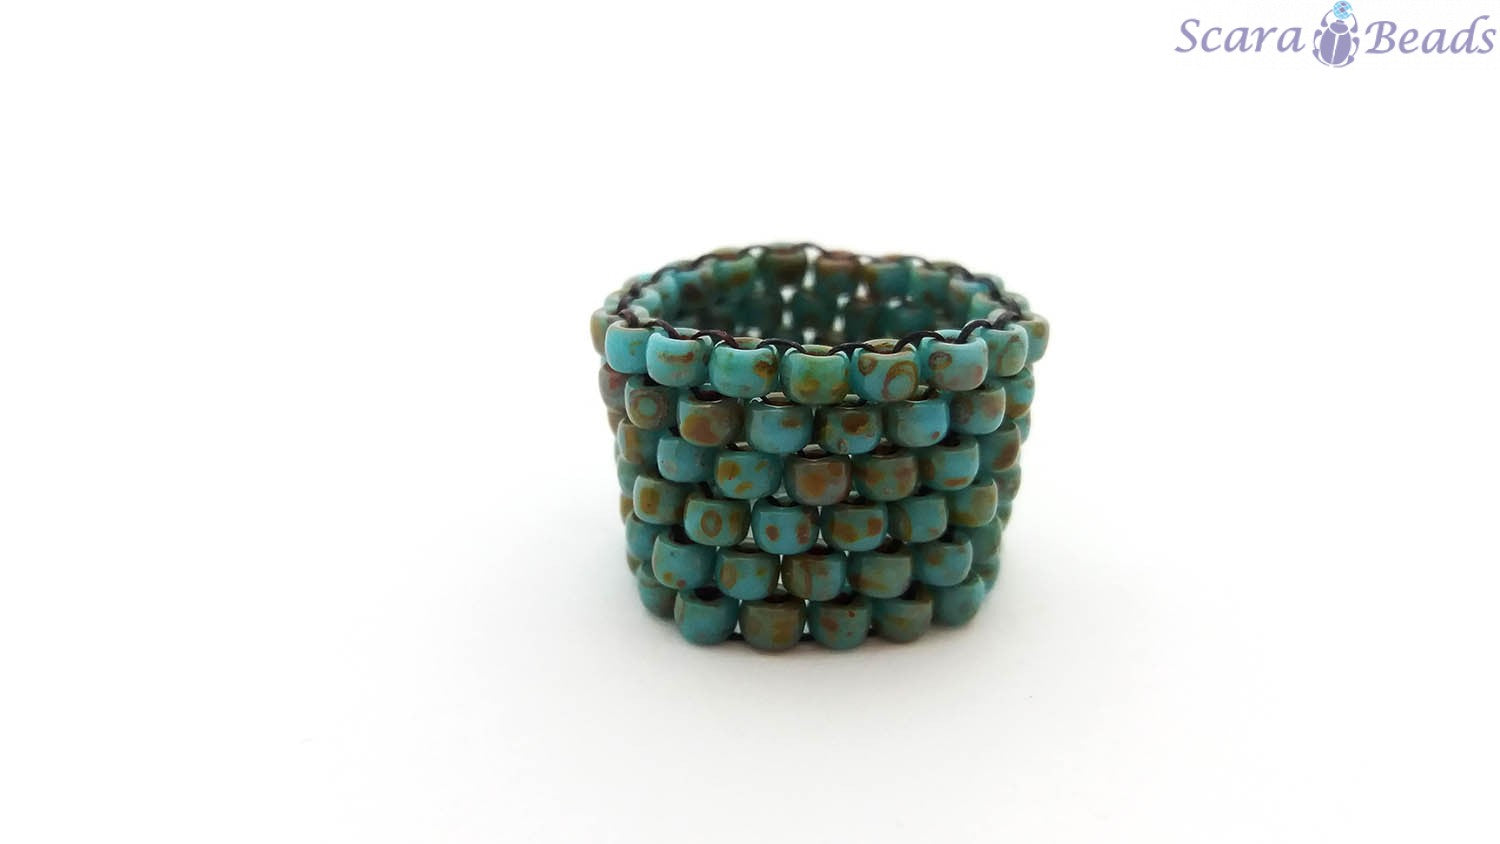 Beadwork Basics: Ring base